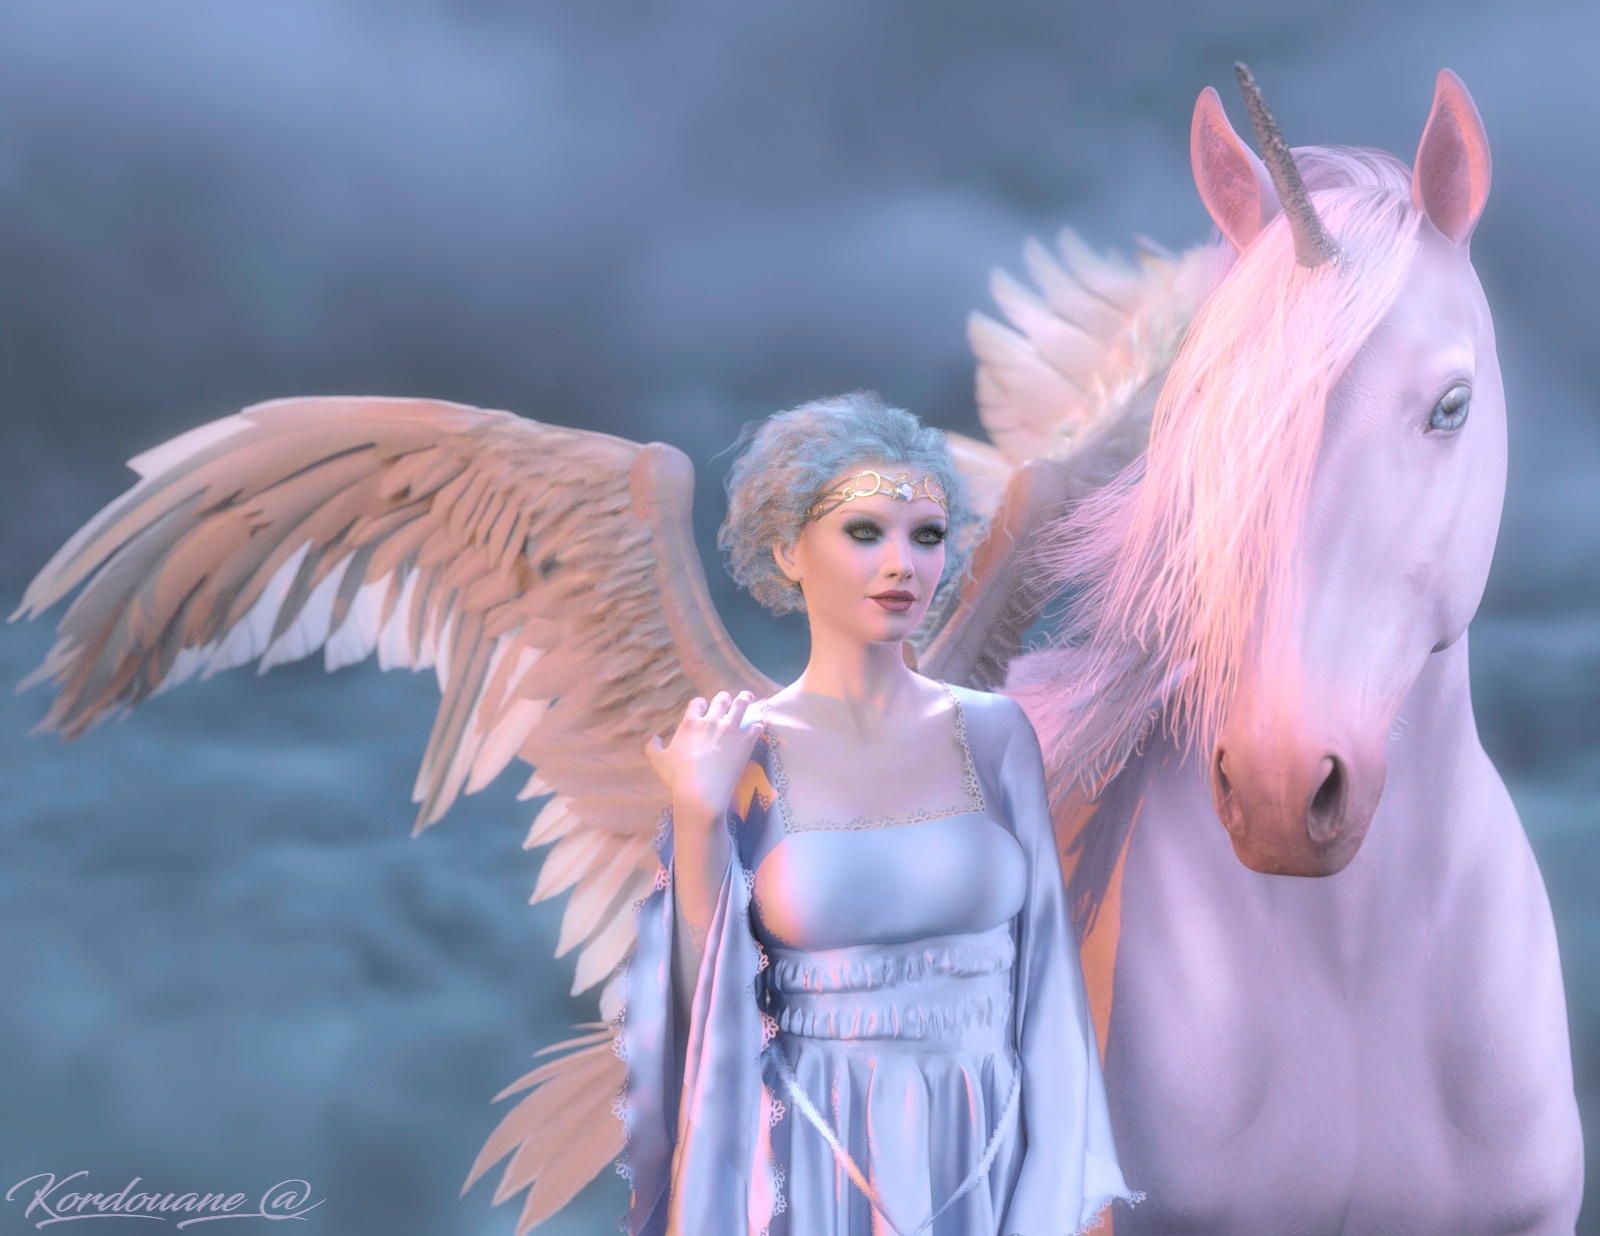 The angel and the unicorn (2)